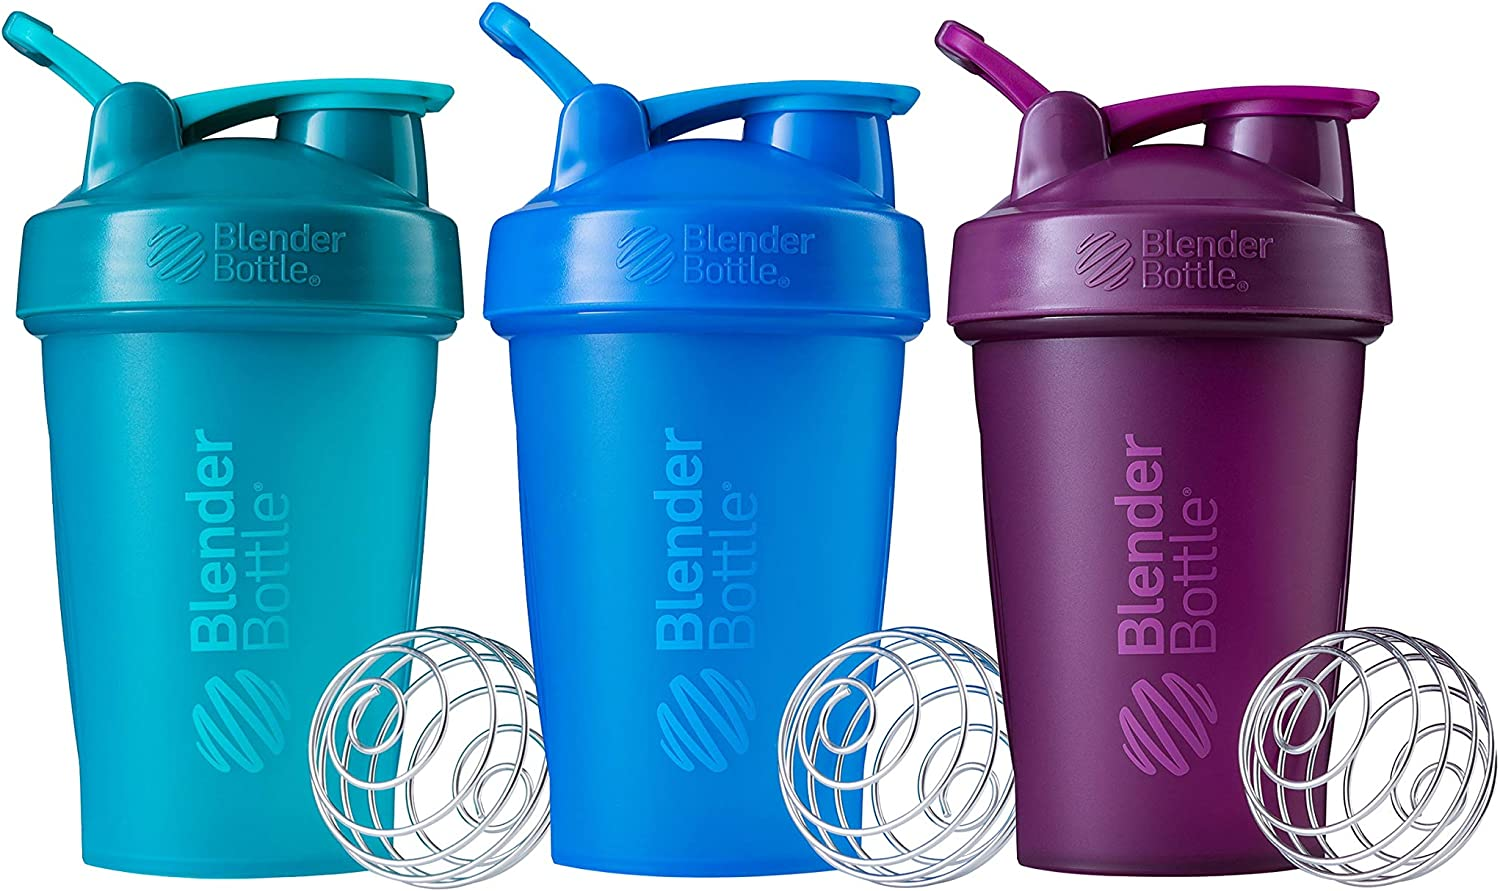 BlenderBottle Classic Shaker New arrival 100% quality warranty Bottle Perfect Shakes a for Protein